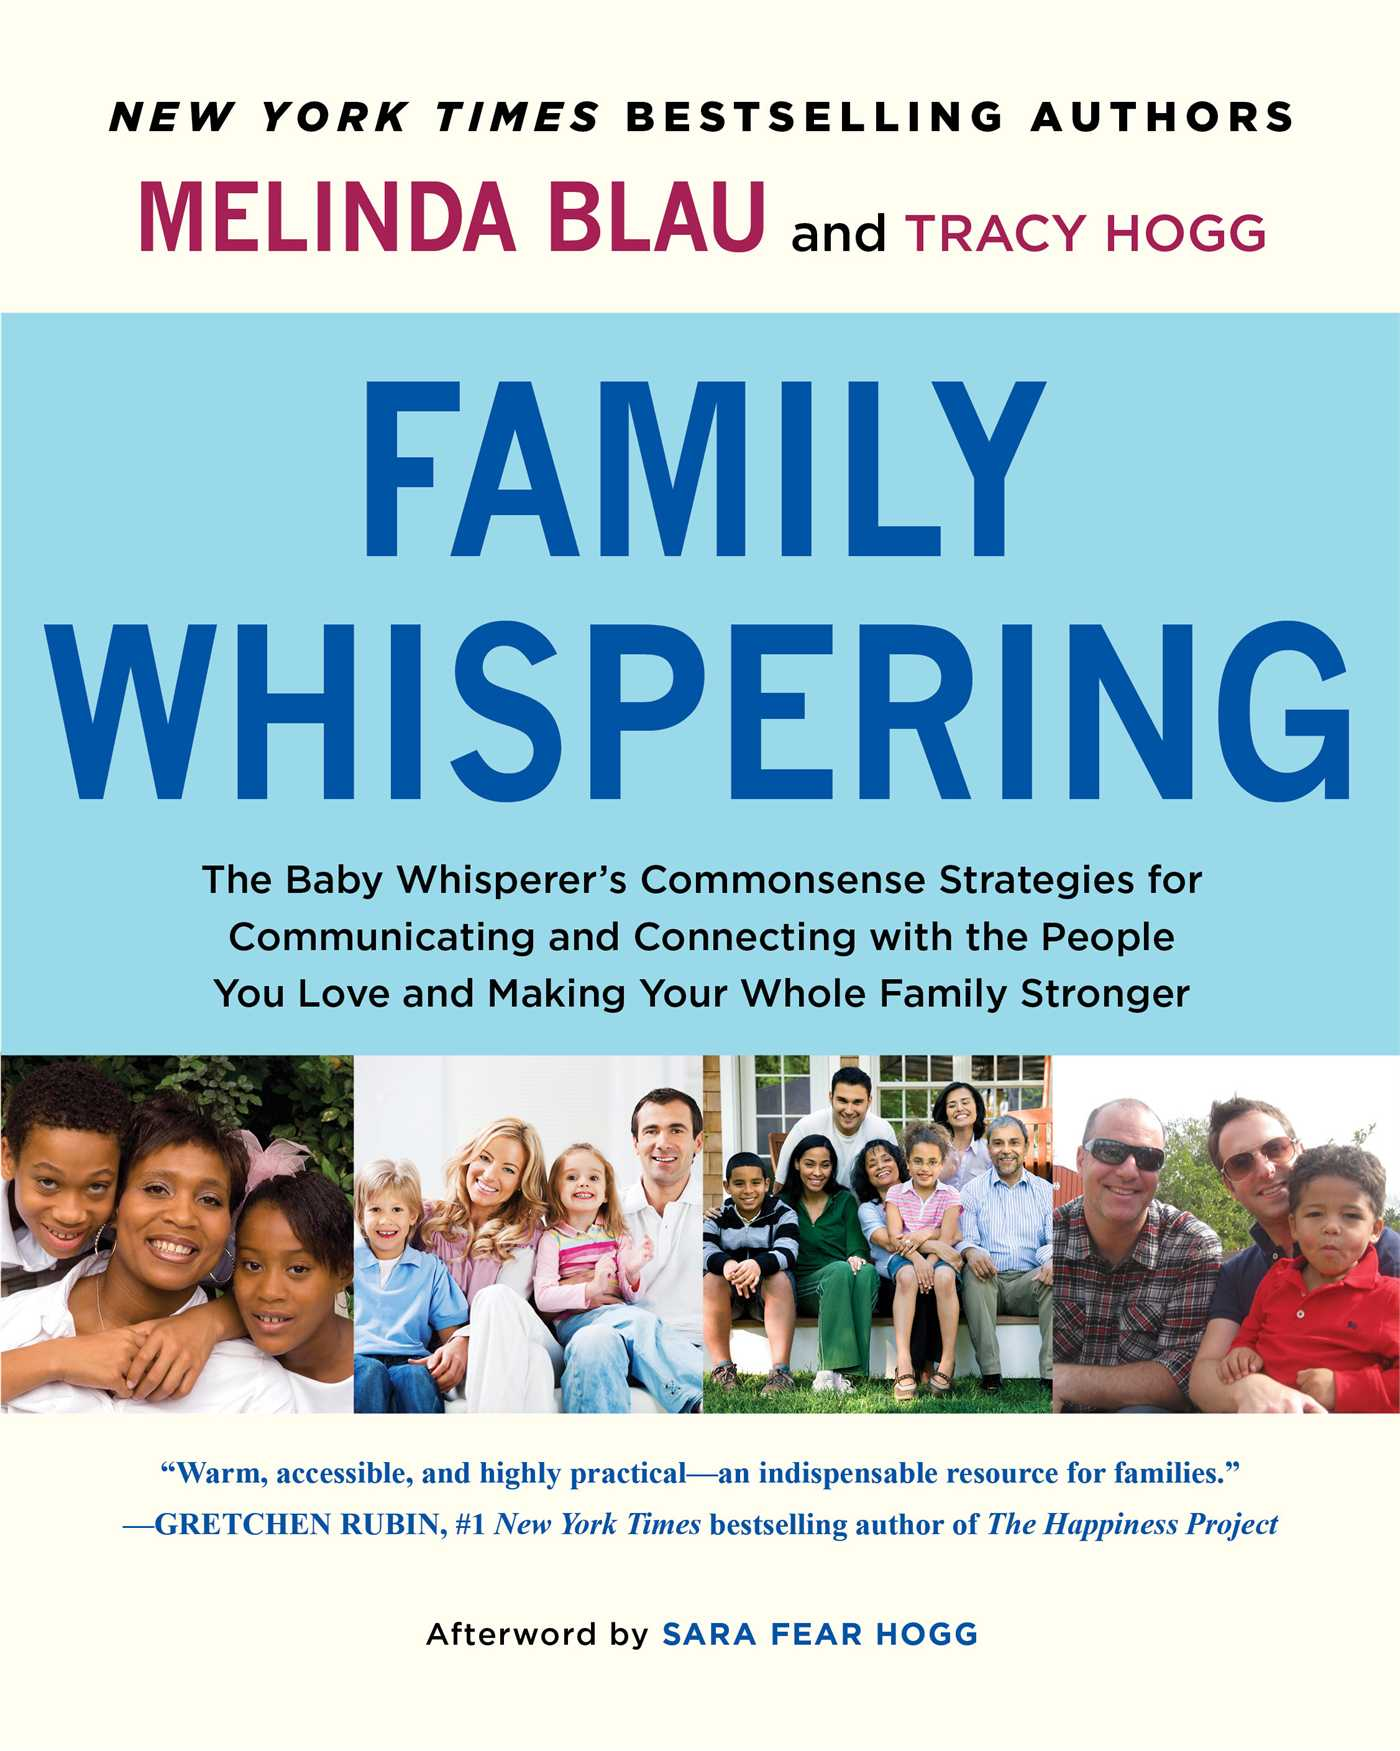 Family-whispering-9781451654462_hr